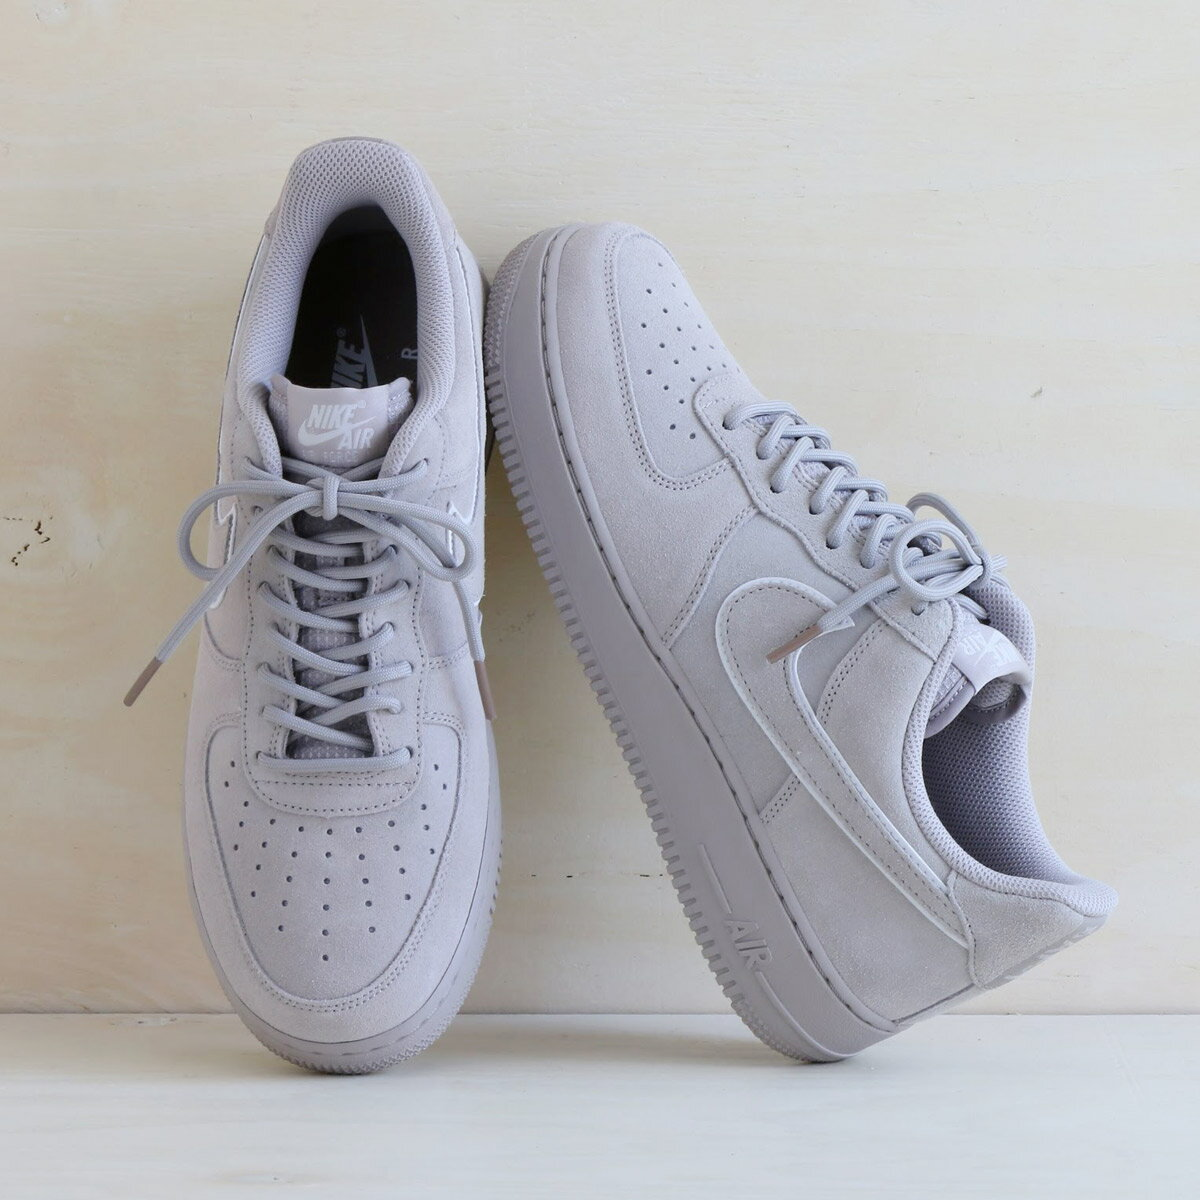 NIKE AIR FORCE 1 '07 LV8 SUEDE(ナイキ エア フォース 1 07 LV8 スエード)(MOON PARTICLE/MOON PARTICLE-SEPIA STONE)18SU-I